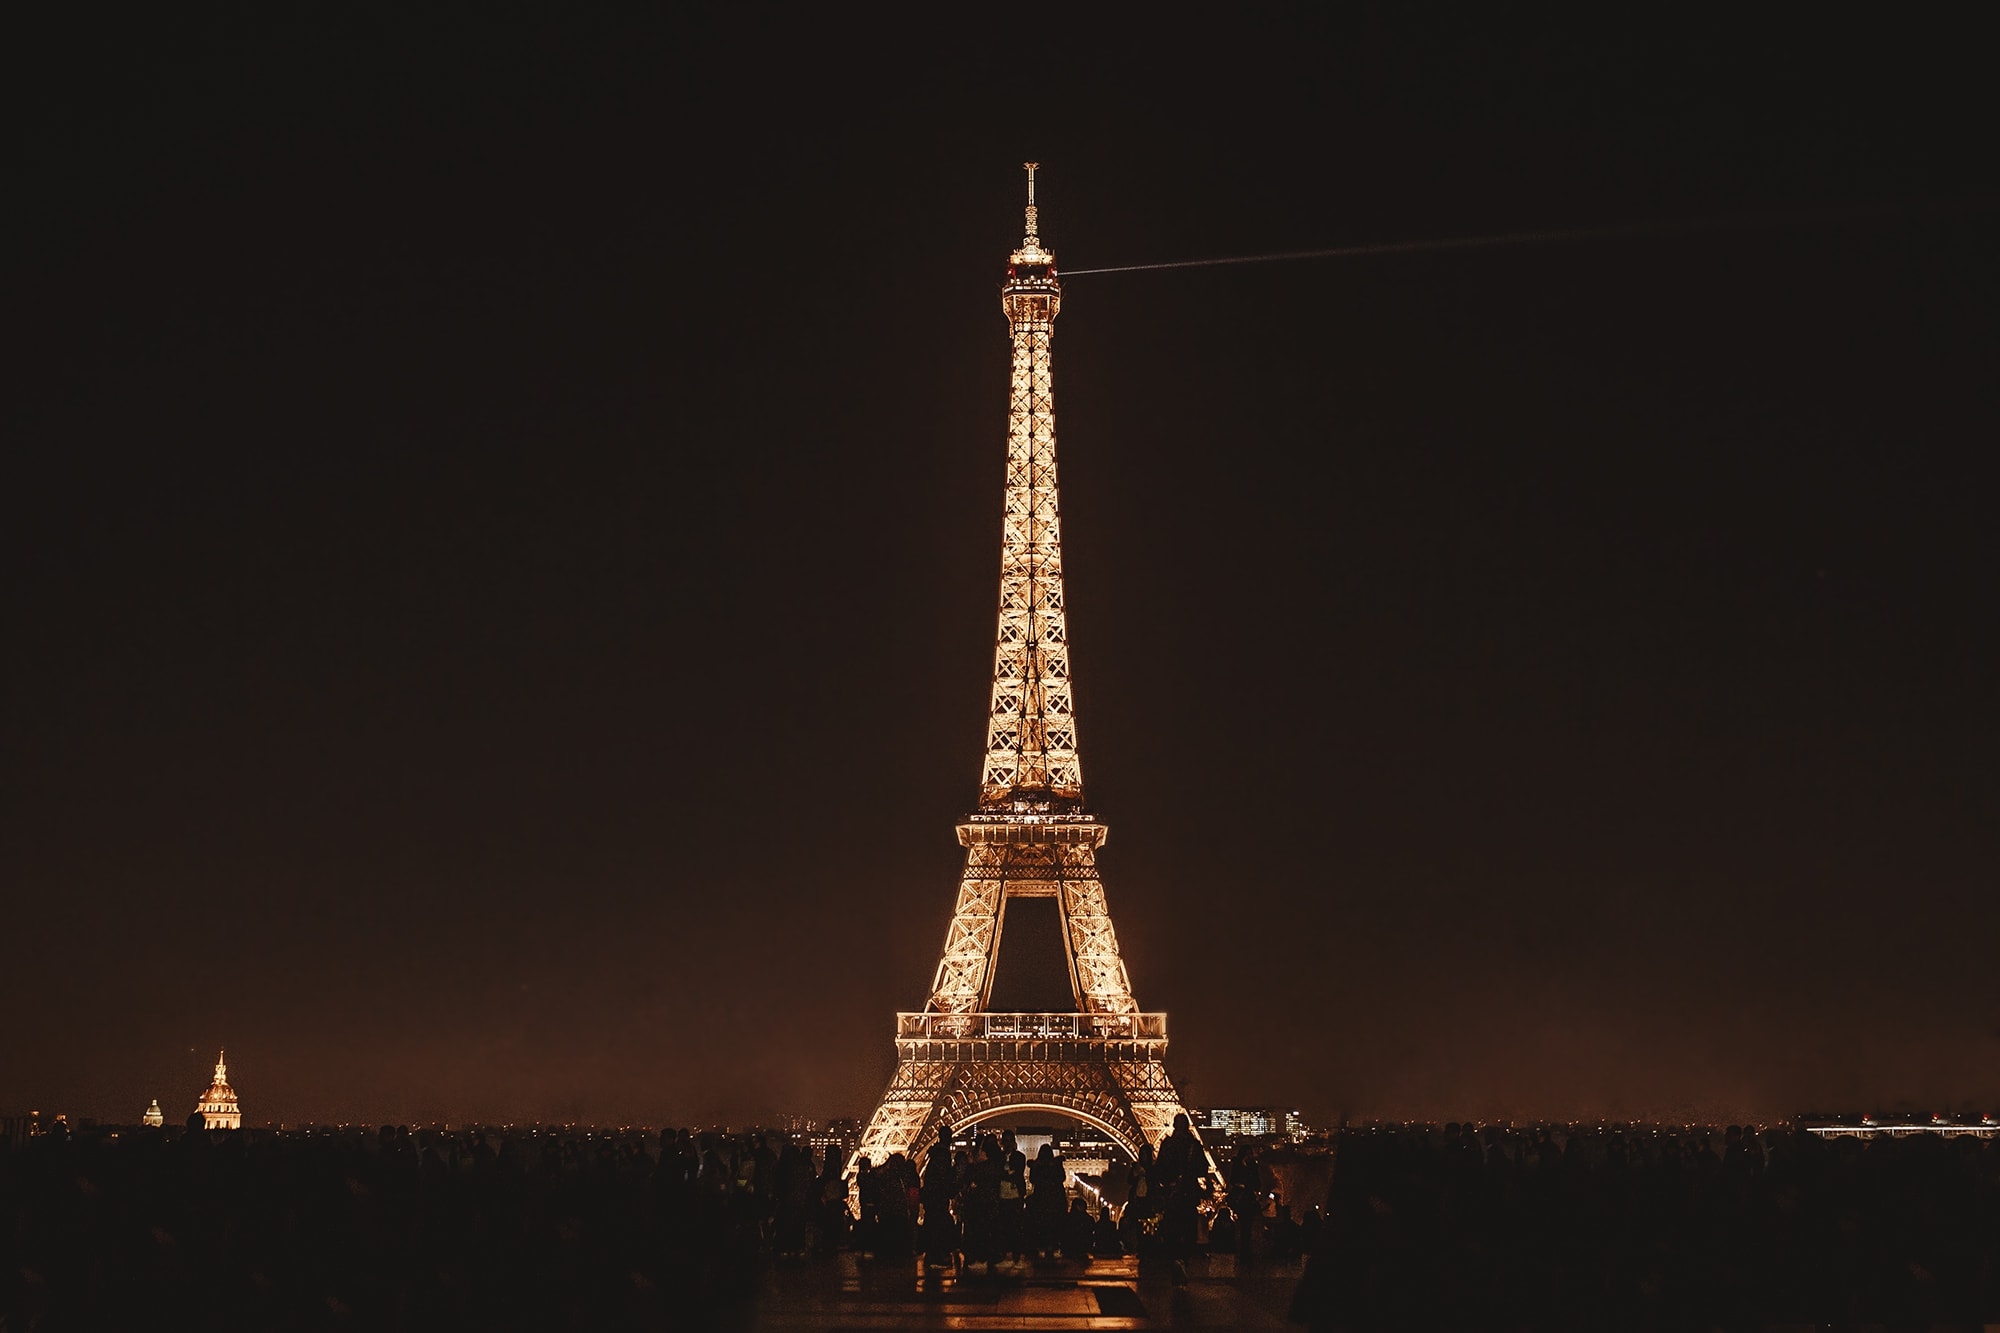 Eiffel Tower at night plateau